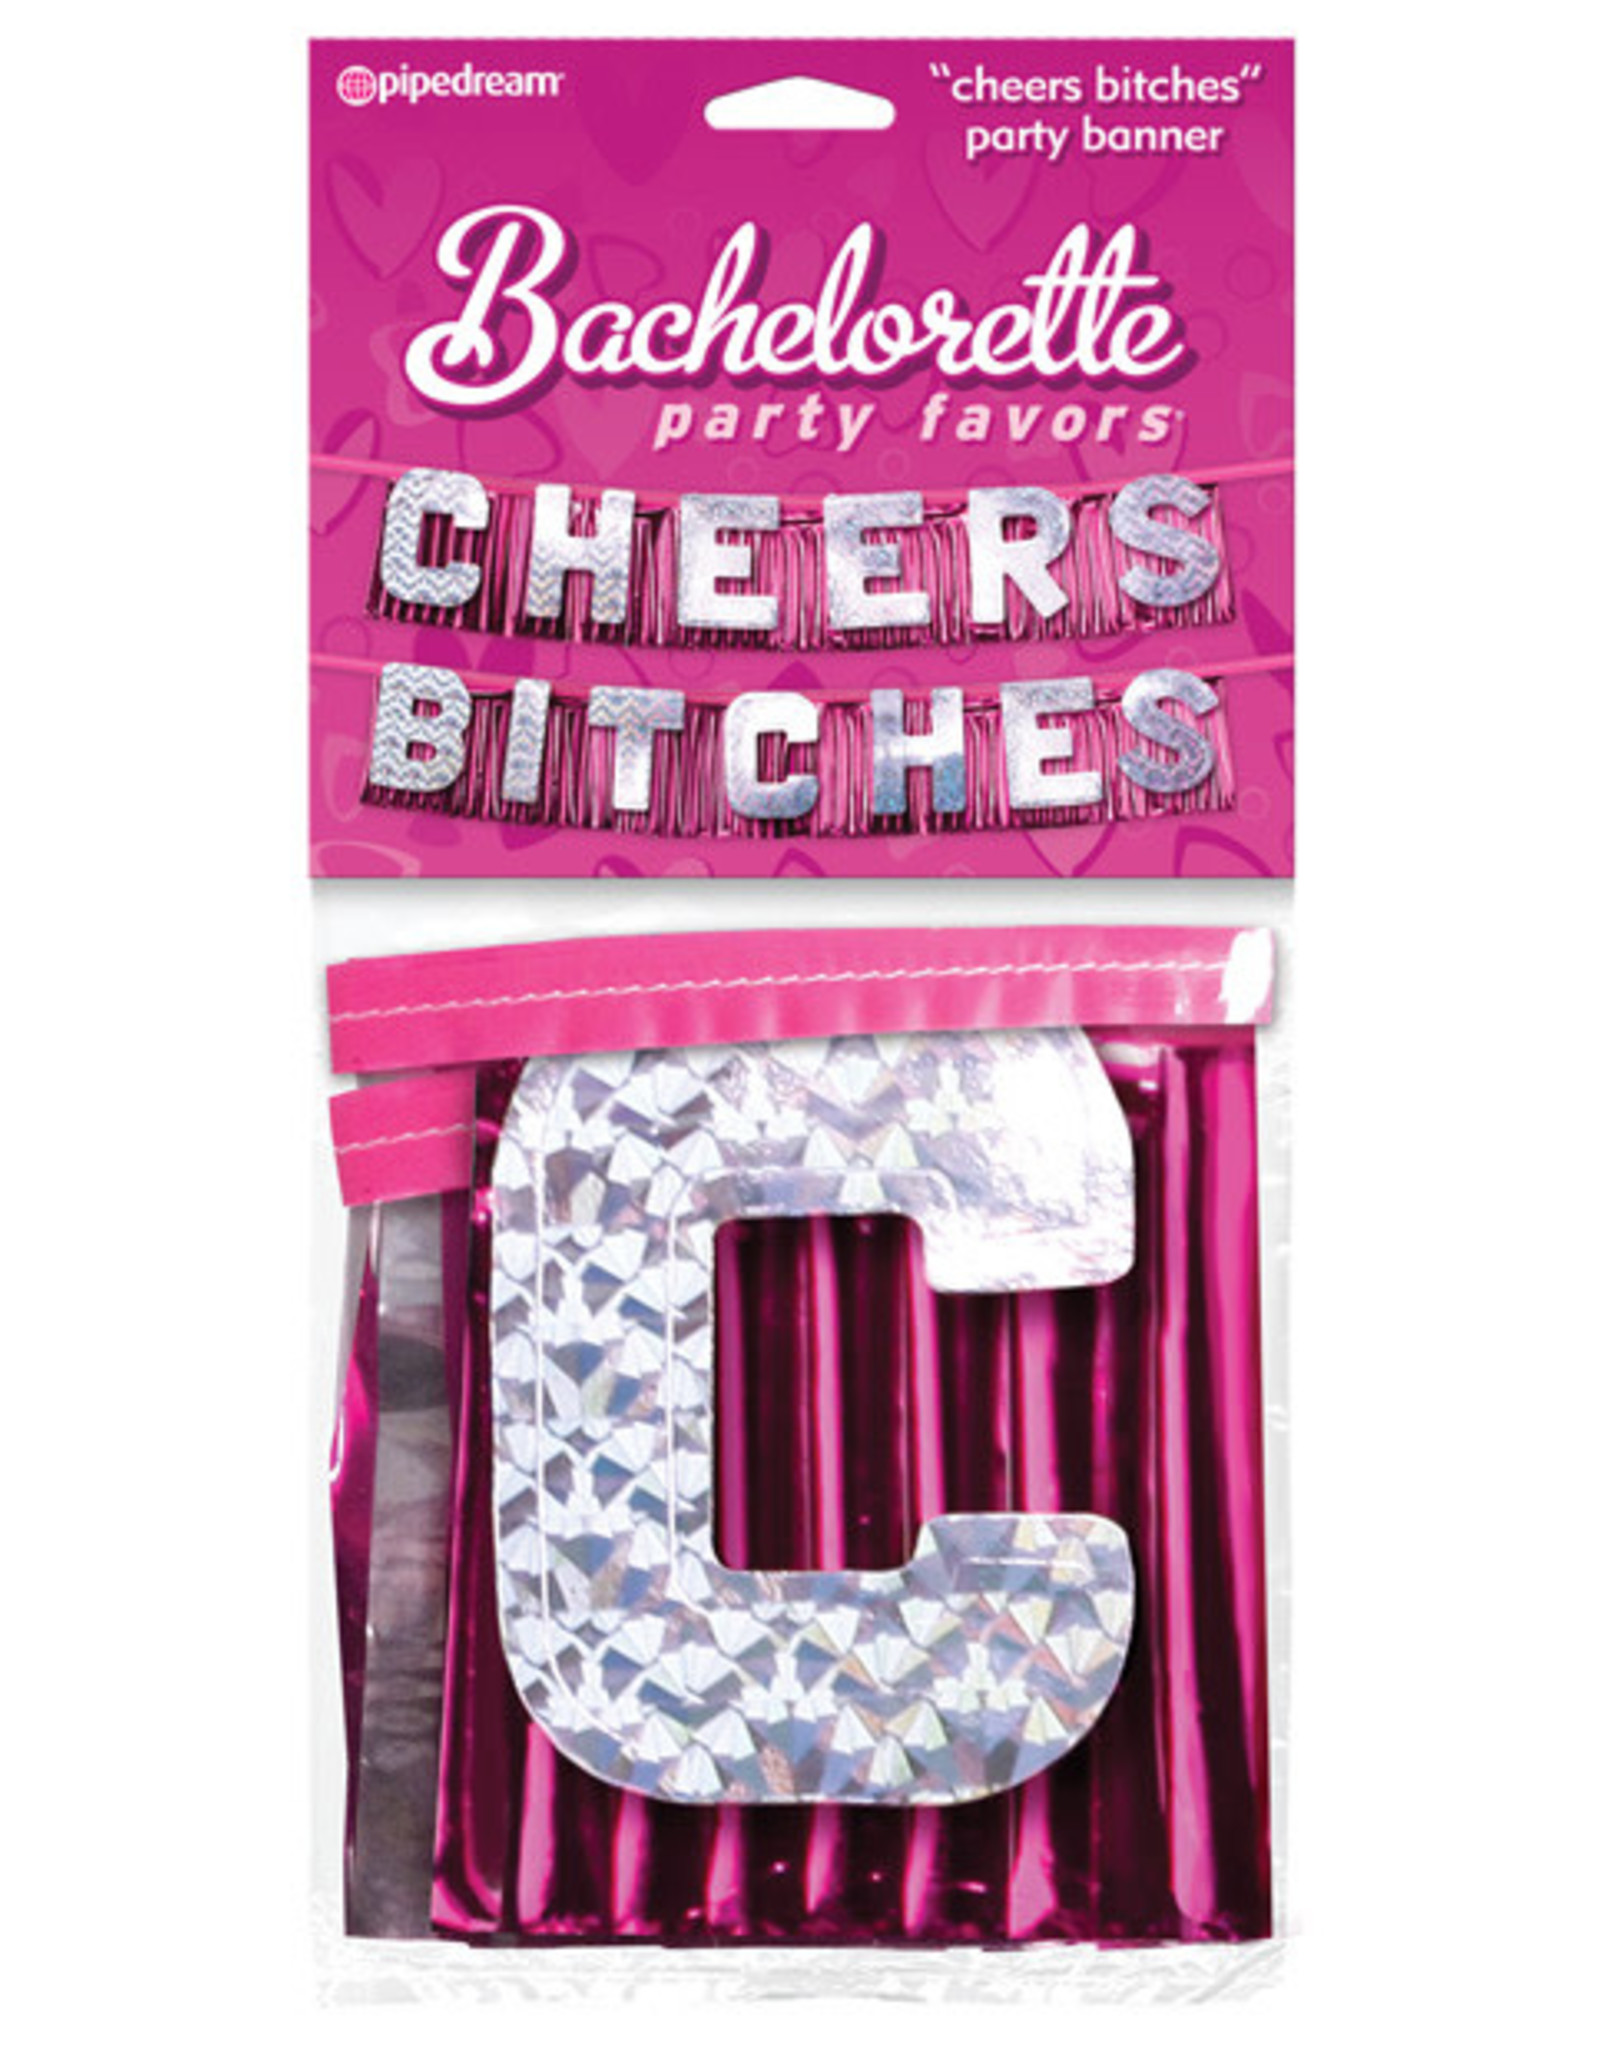 Cheers B*tches Banner